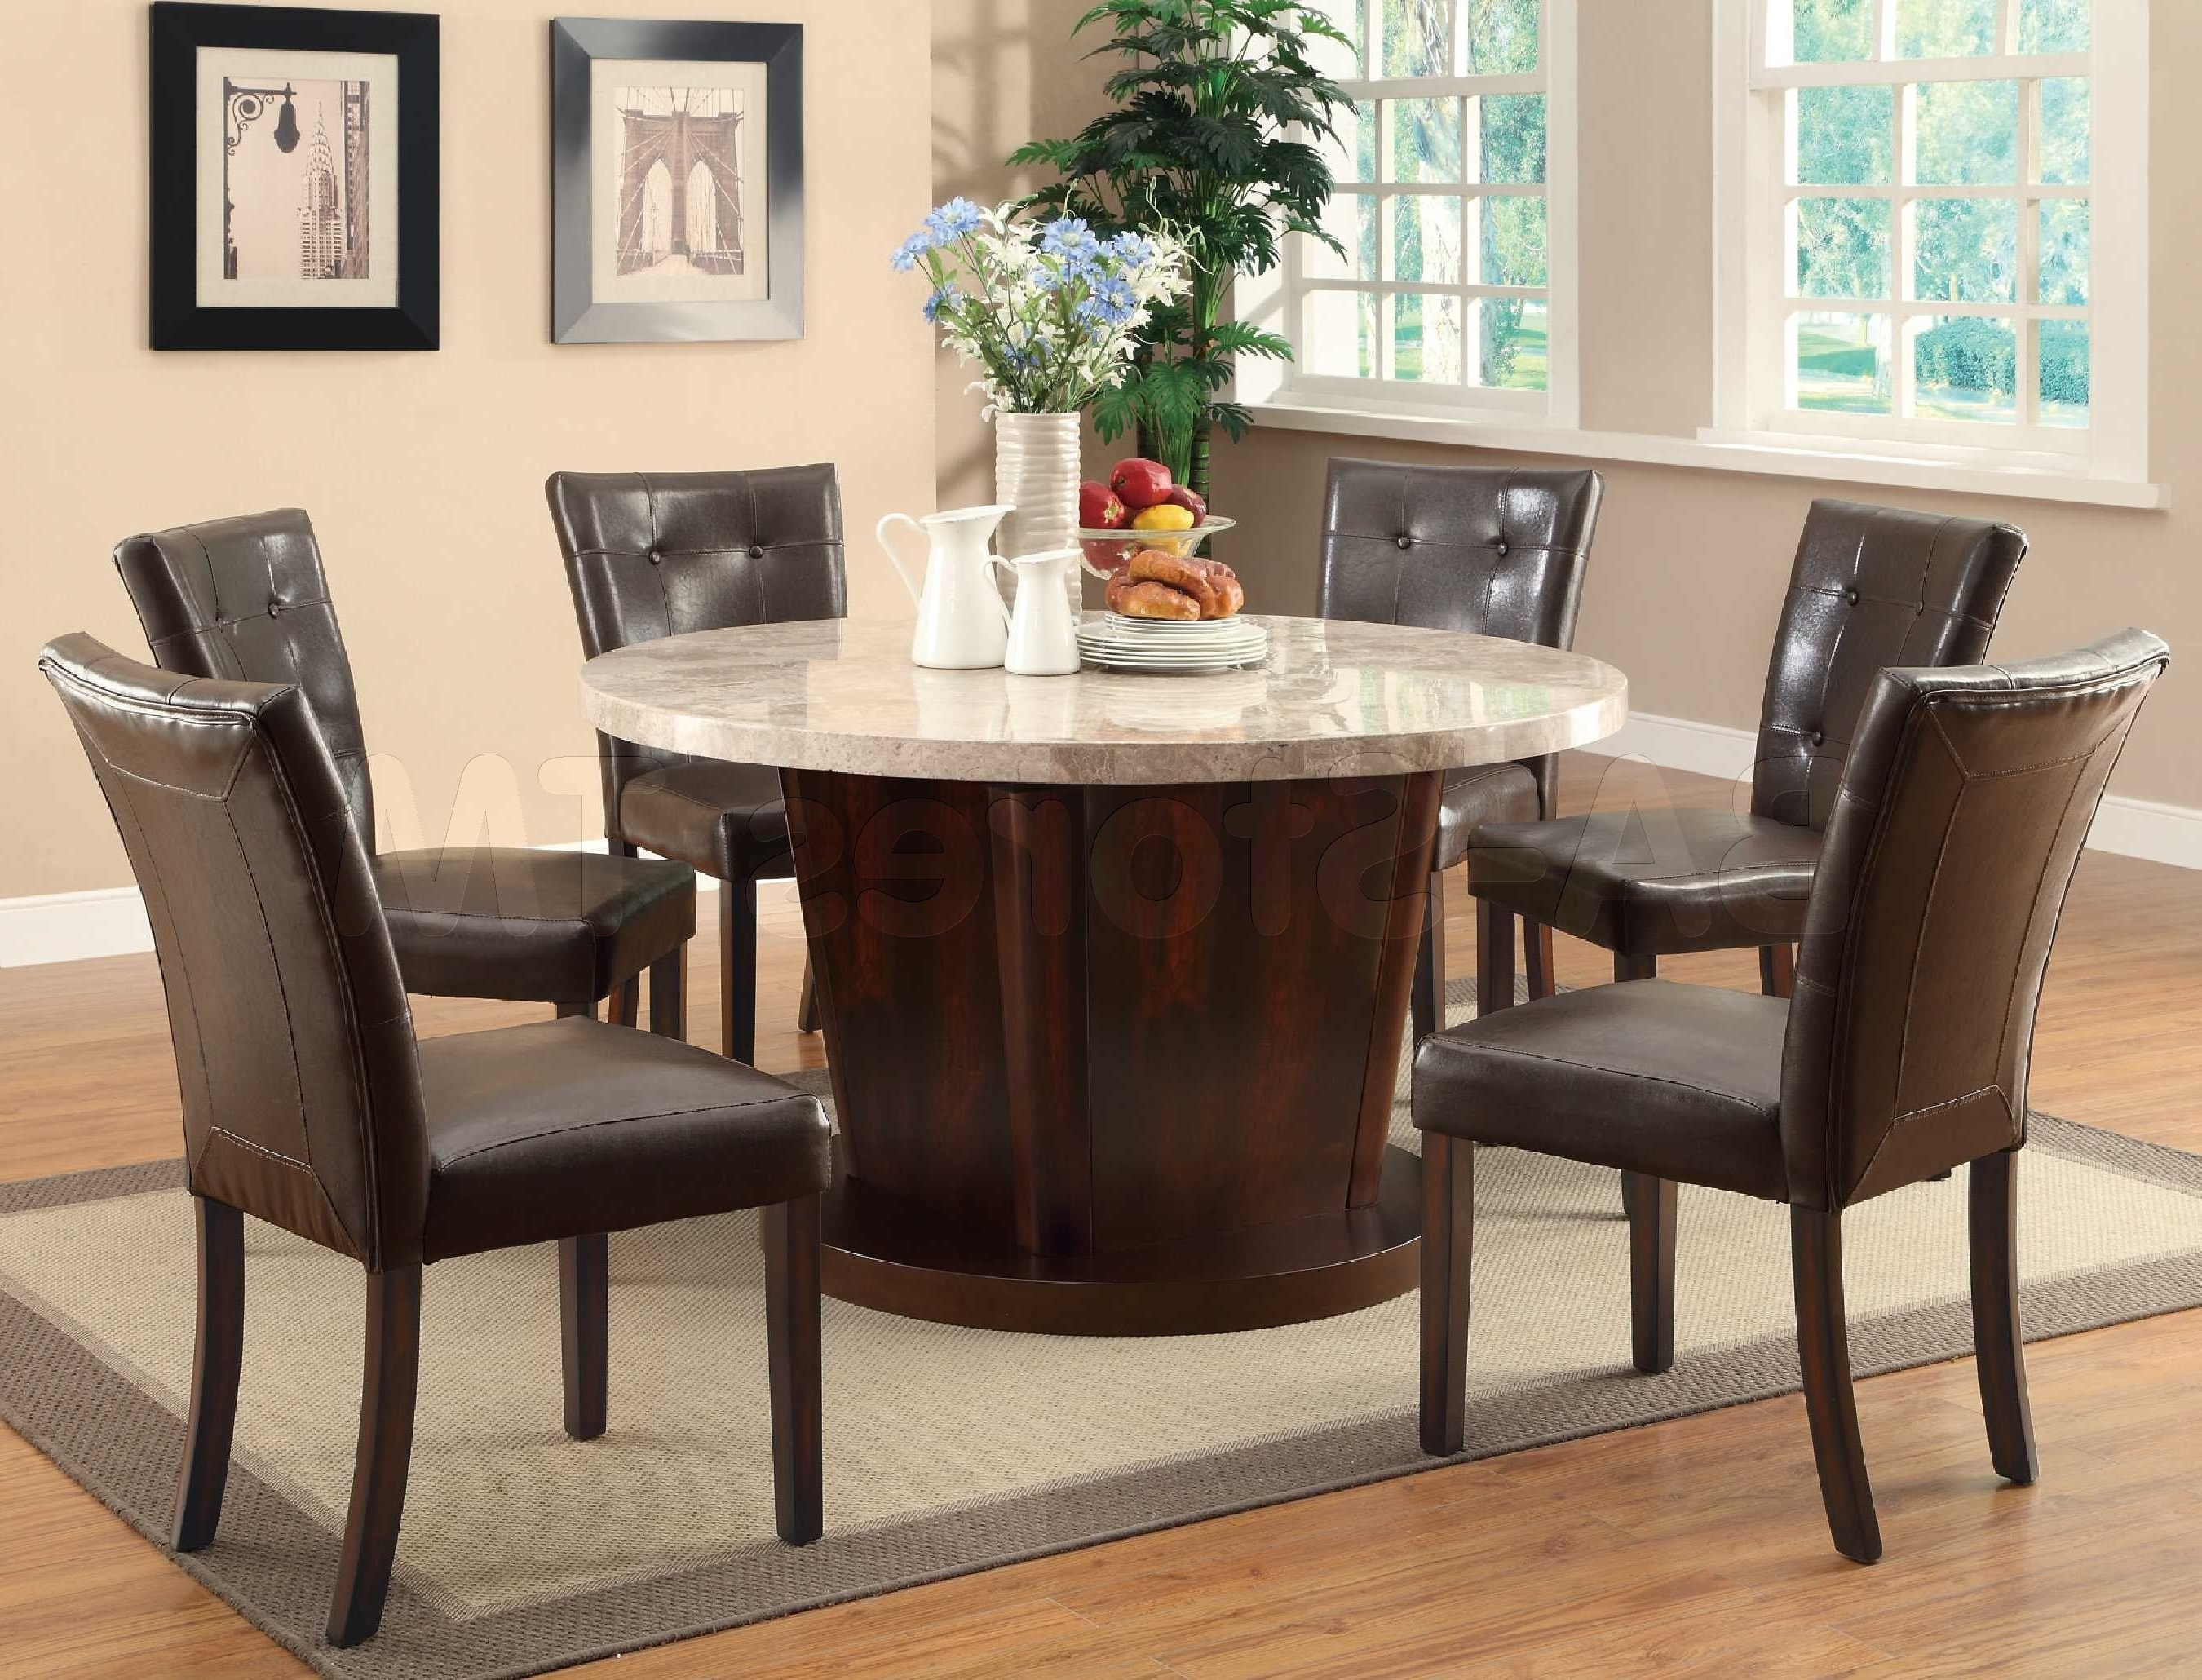 Most Recent 6 Seat Round Dining Tables Throughout Decorating Nice Dining Table Set 6 Seater Round Room Sets For Home (View 15 of 25)